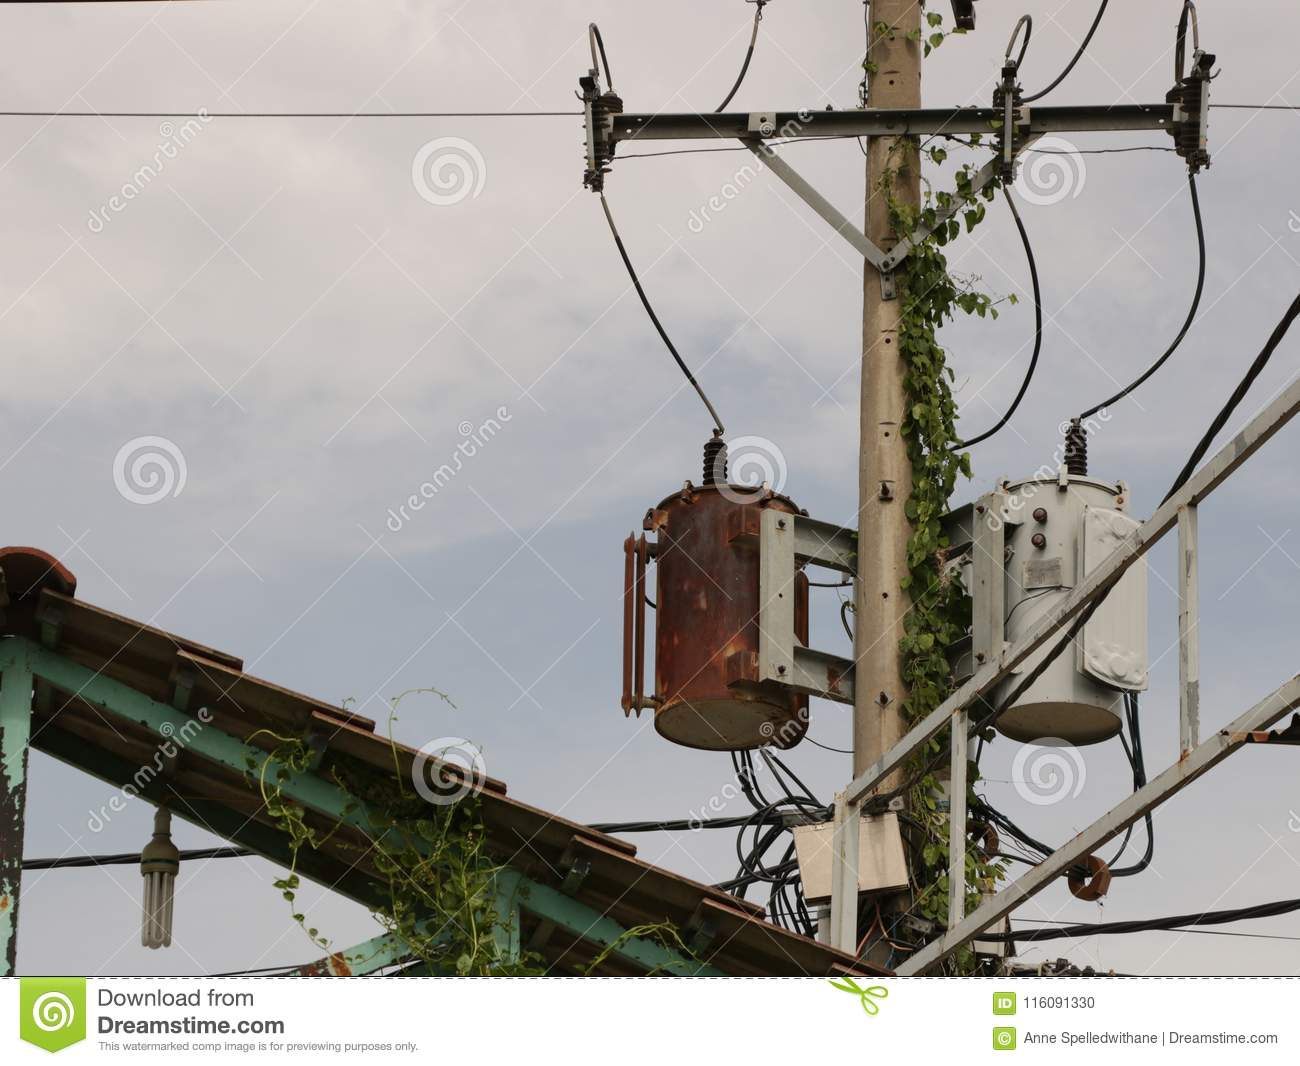 hight resolution of vintage rusty distribution transformer electric box on pole